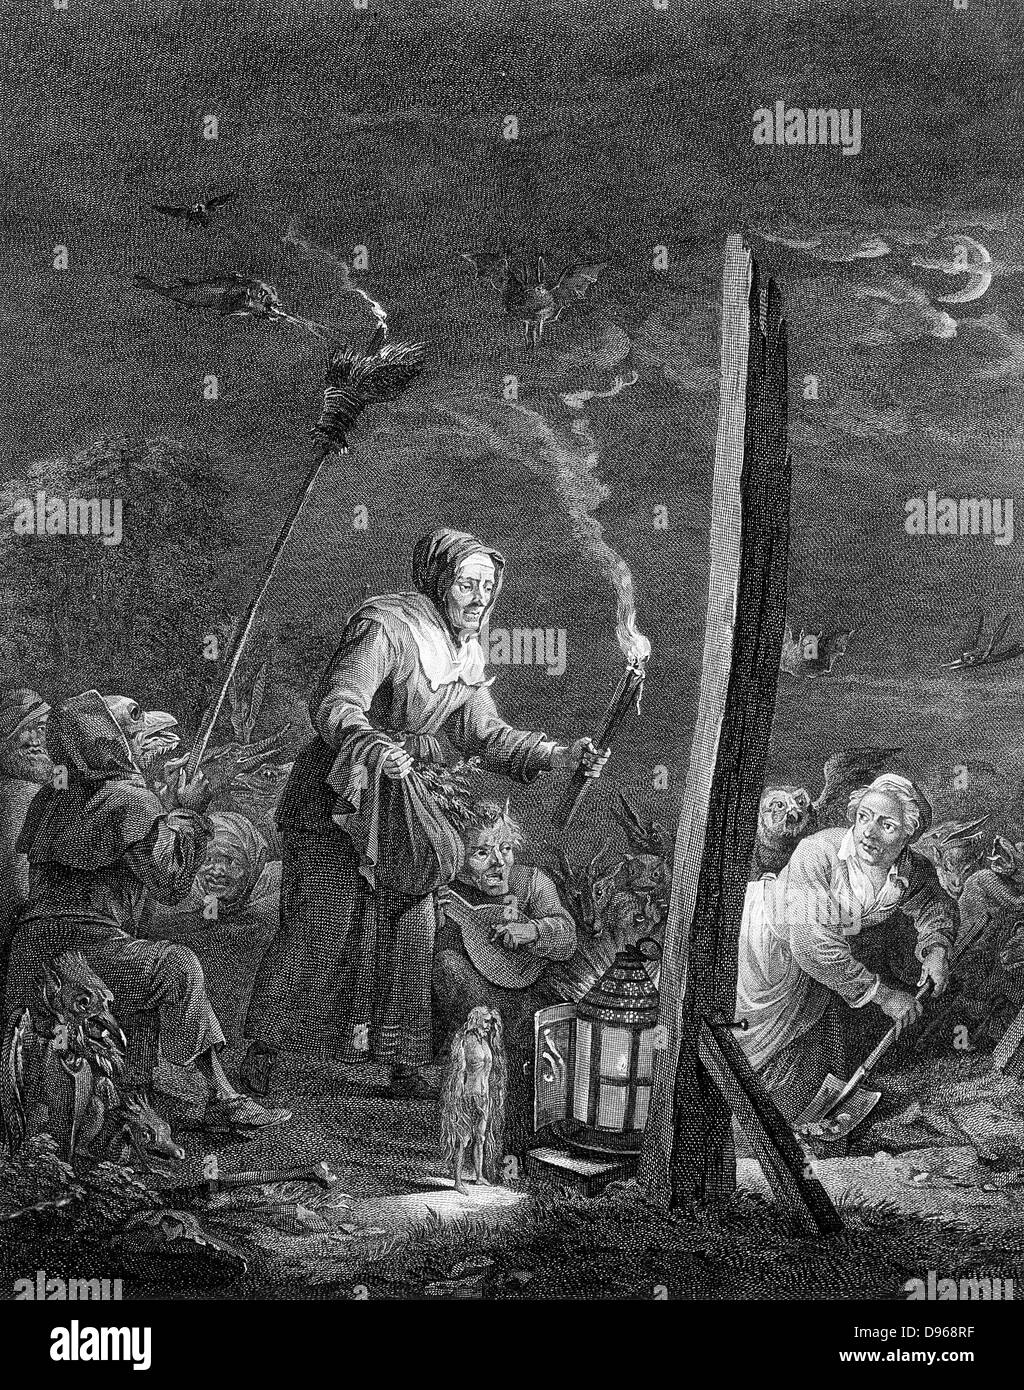 The Witches' Sabbath. Engraving after David Teniers the Younger (1610-1690) - Stock Image